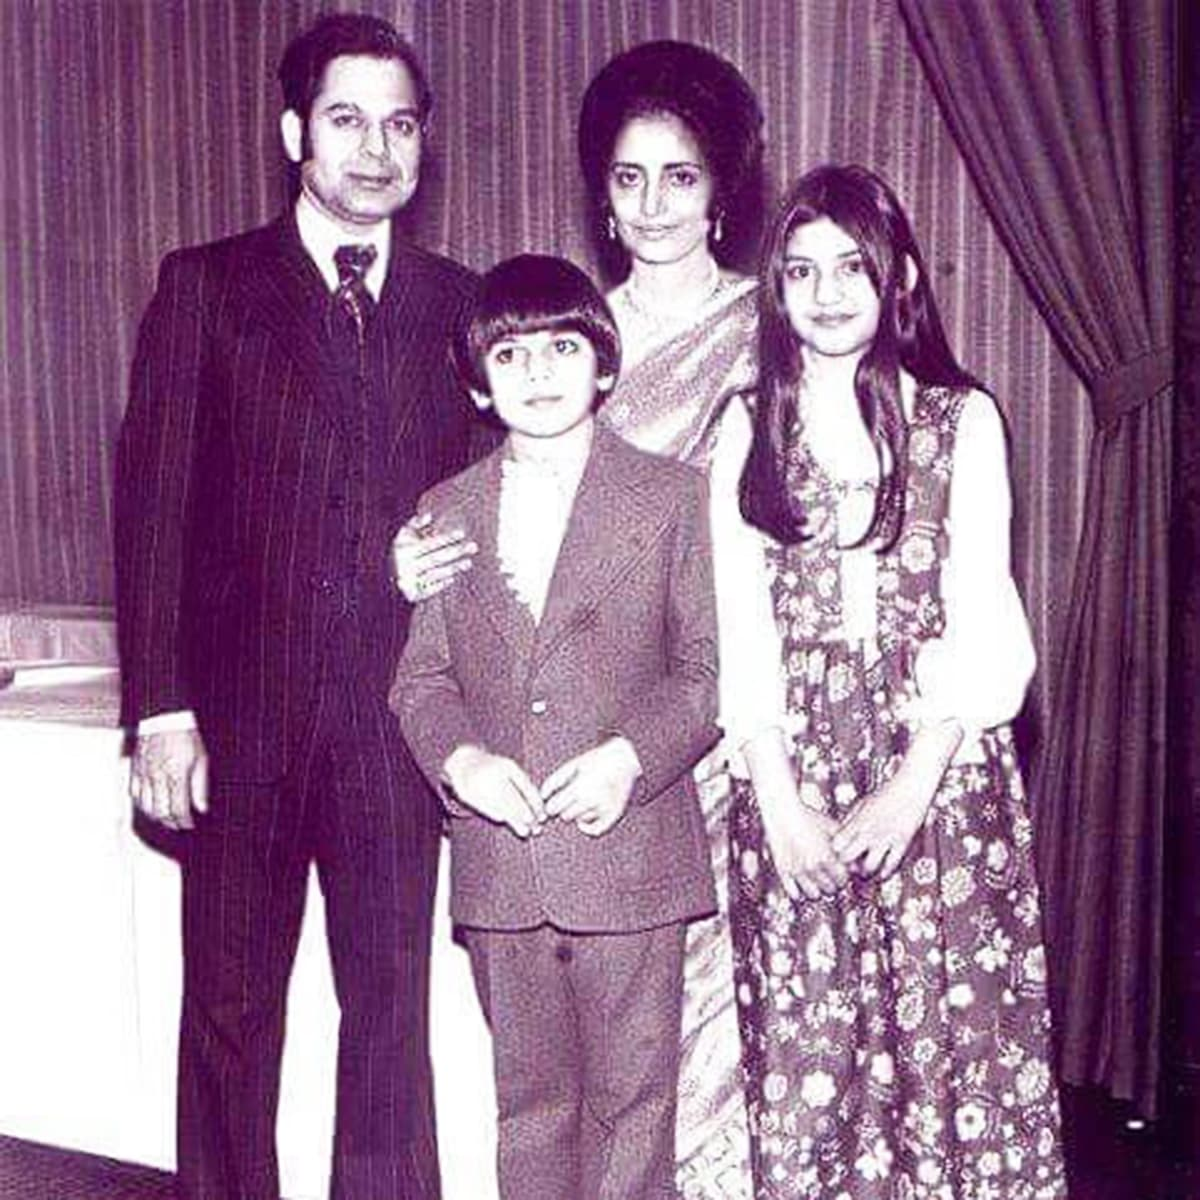 Zoheb and Nazia Hasan with their parents, Basir and Muneeza Hasan. —Photo provided by Zoheb Hasan